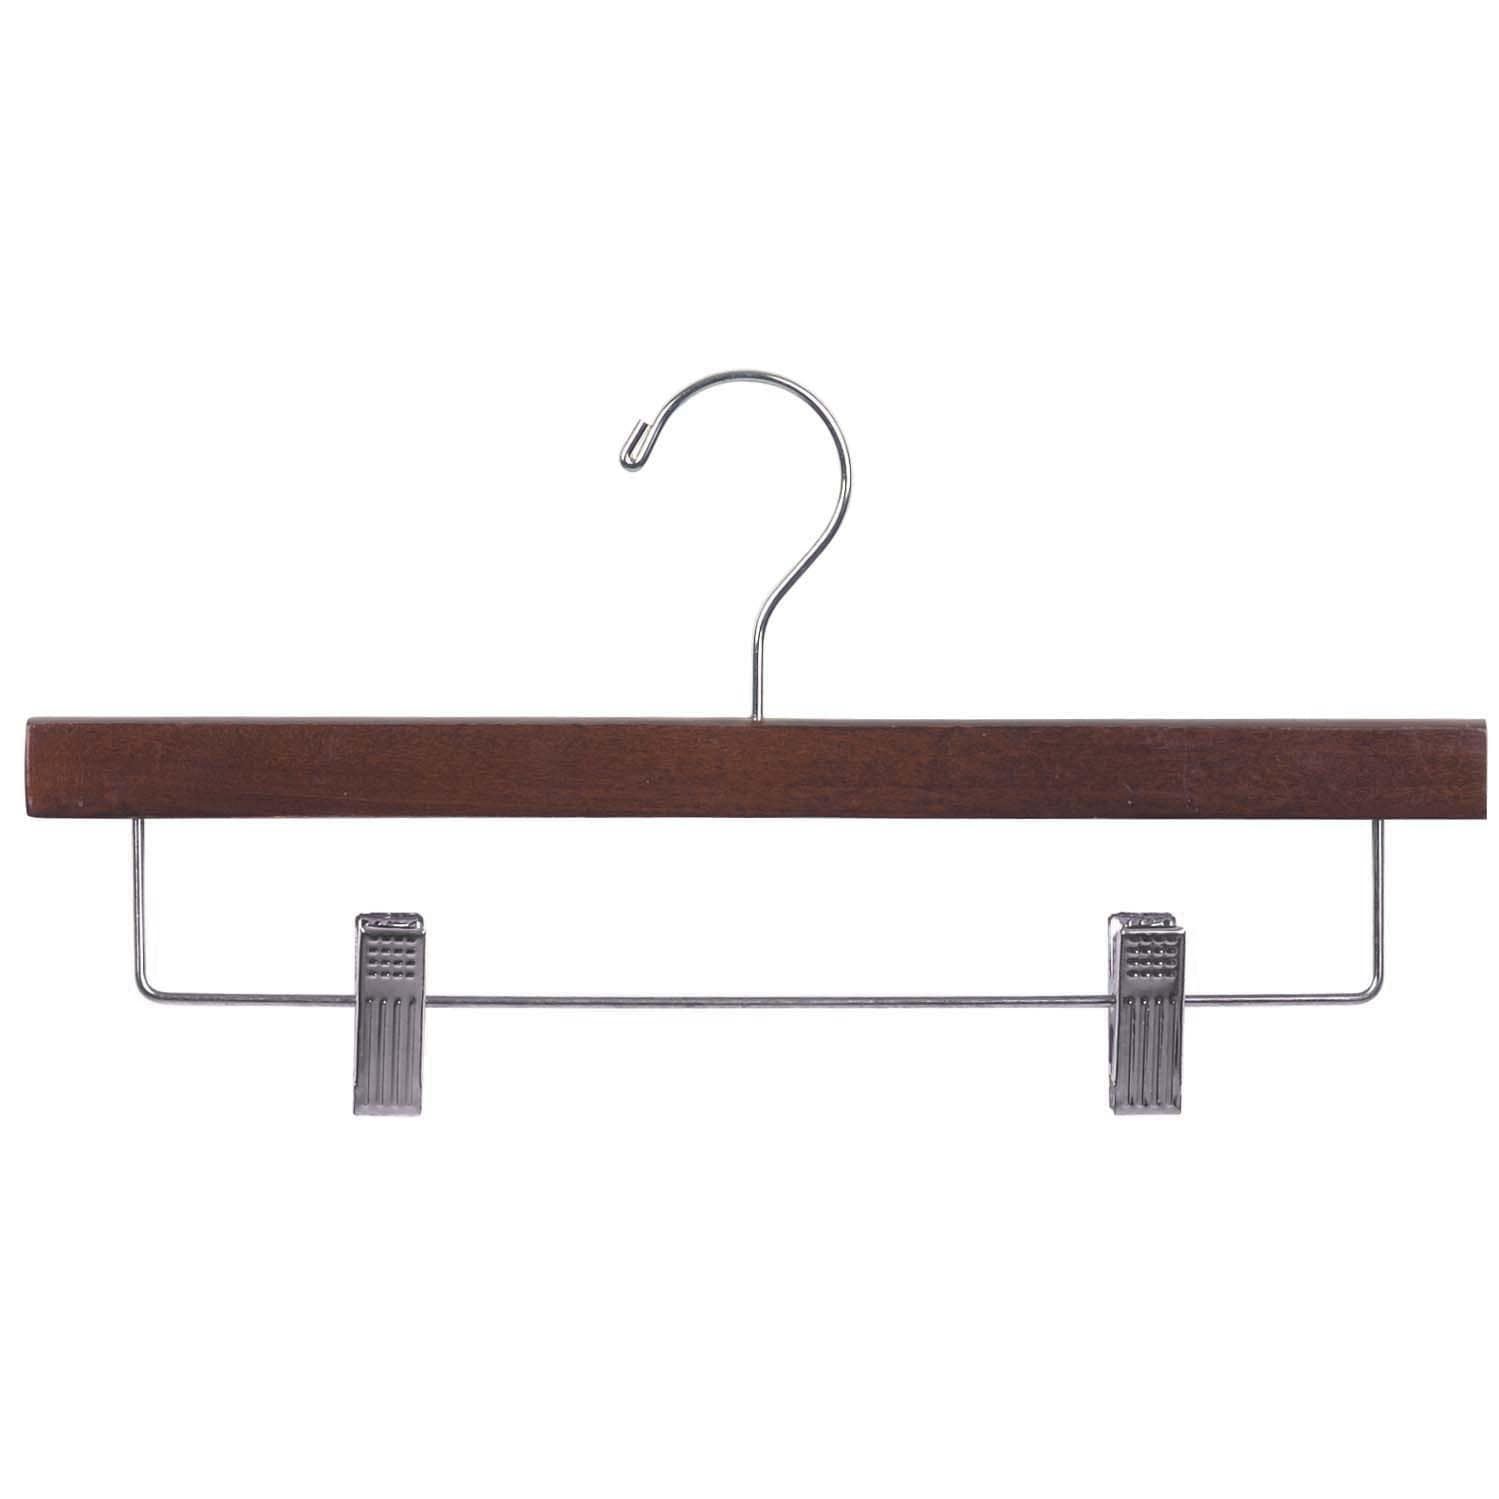 Wooden Walnut Finish Bottom Hangers With Nickel Hook